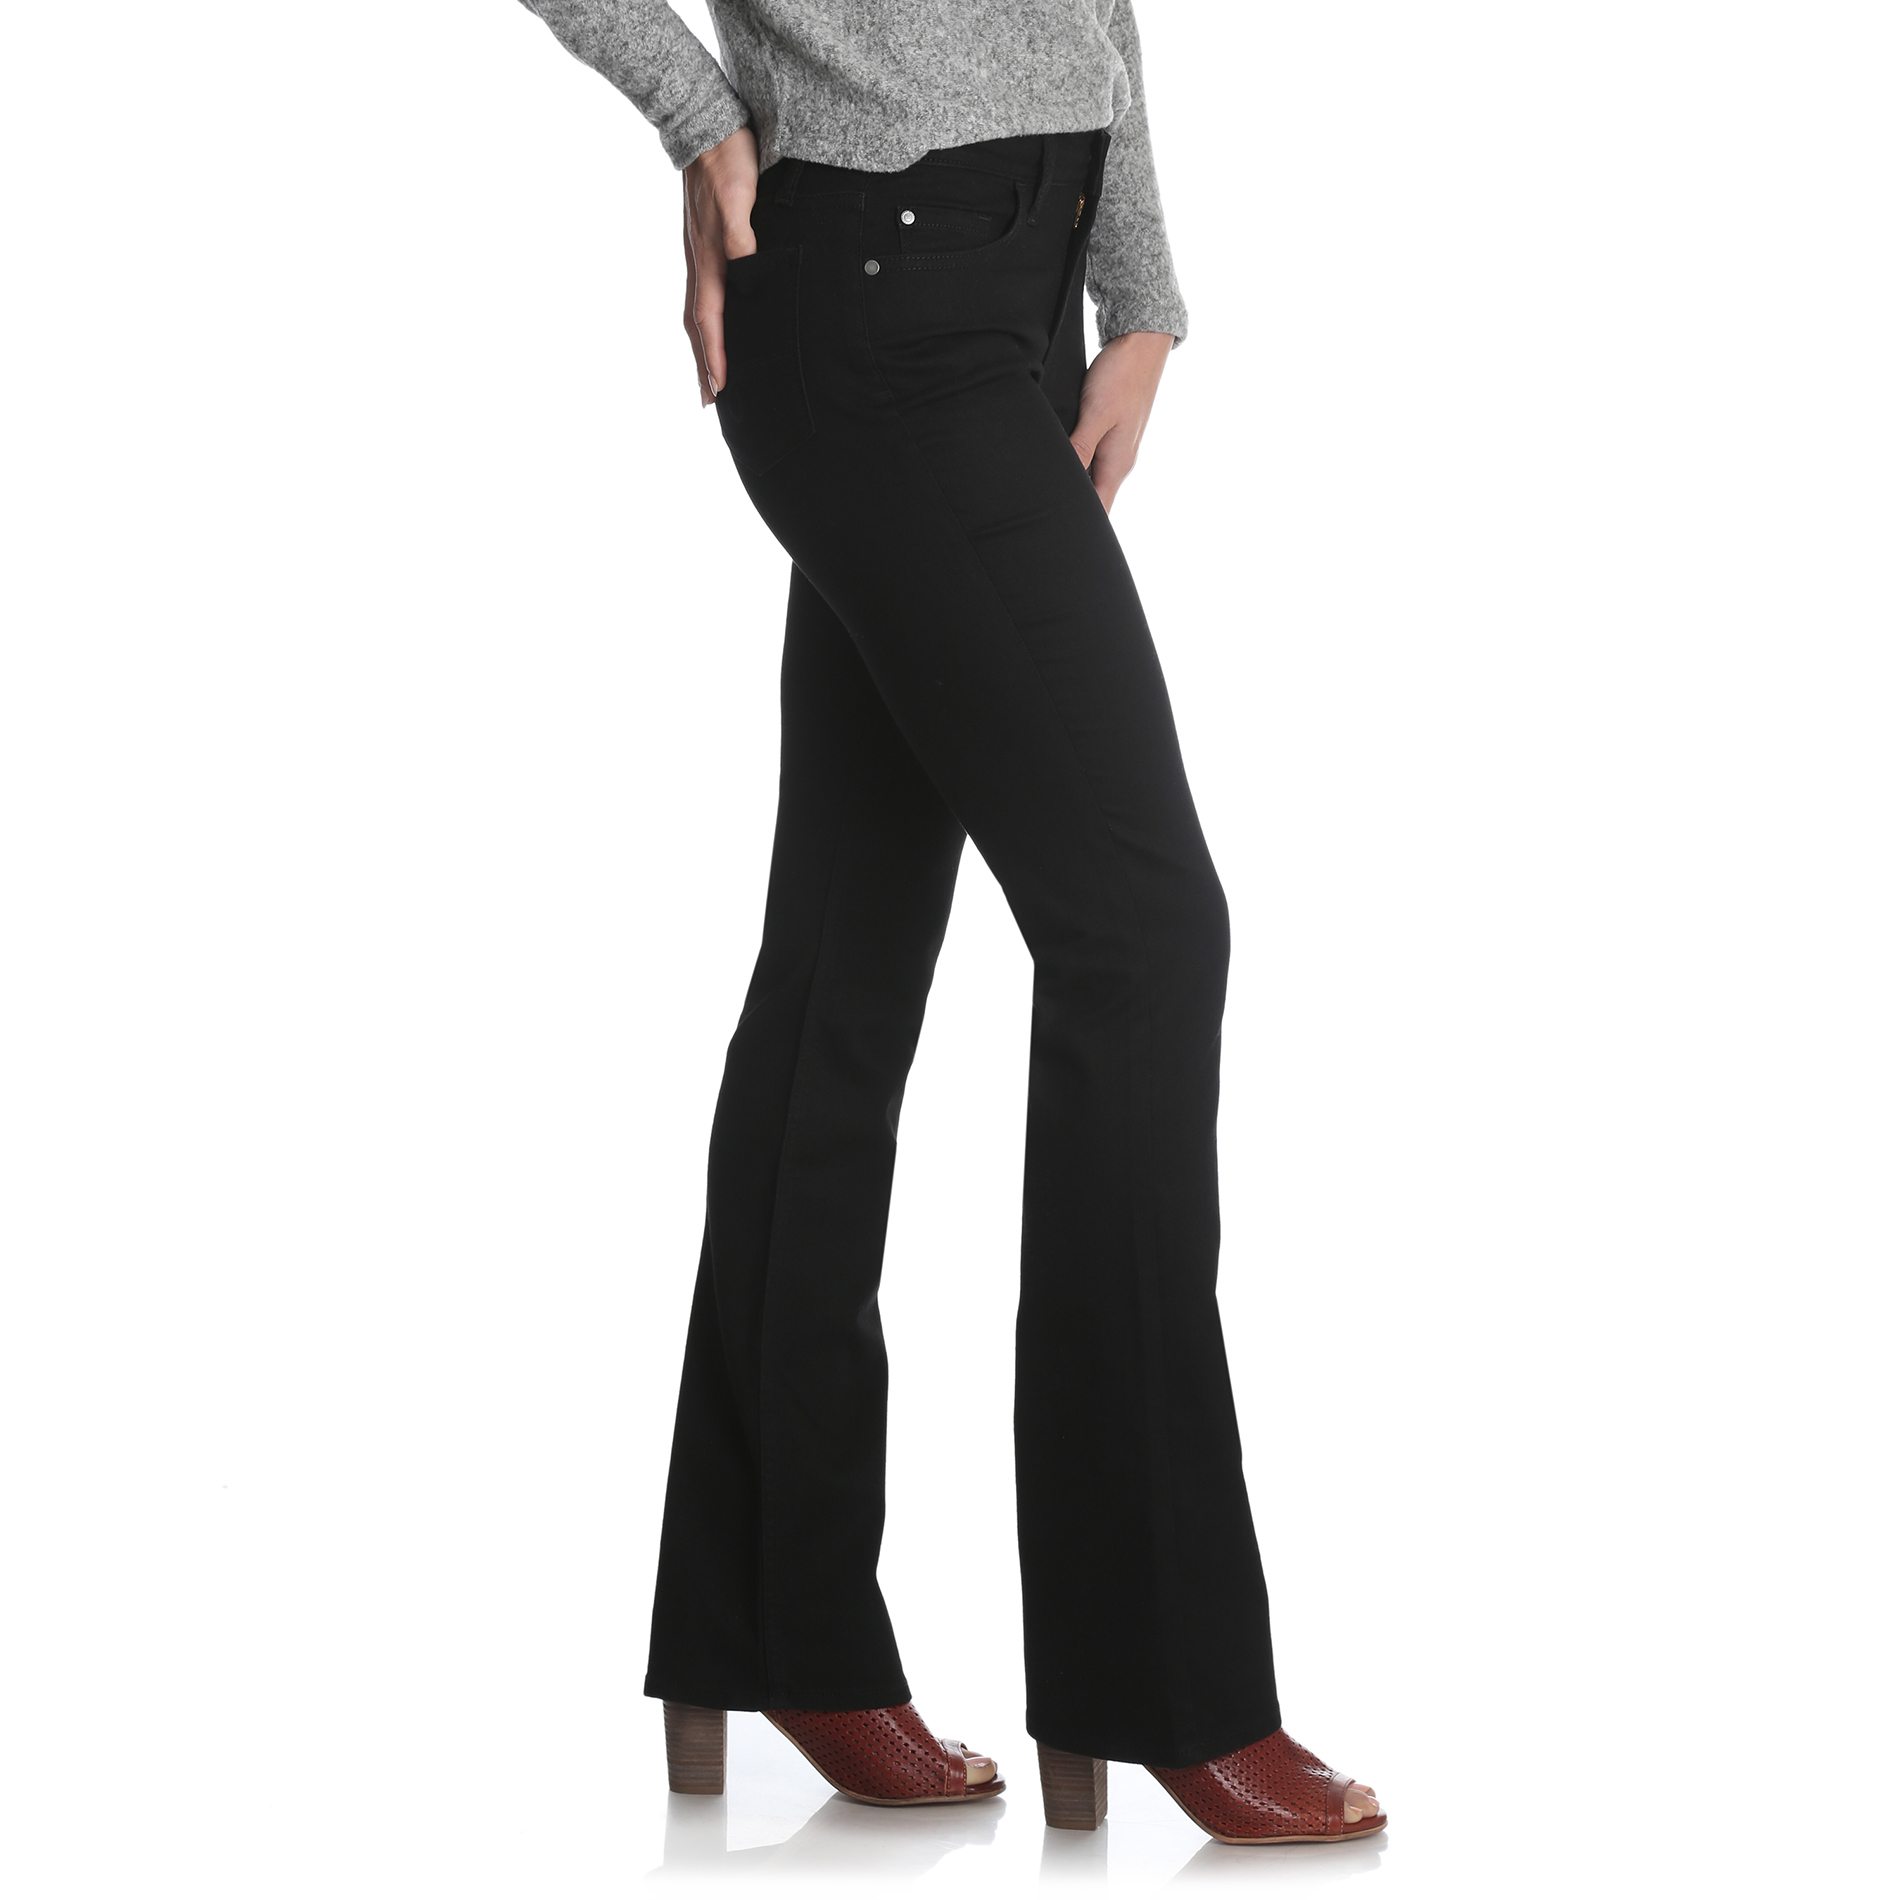 Lee Riders Womens Slender Stretch Jeans